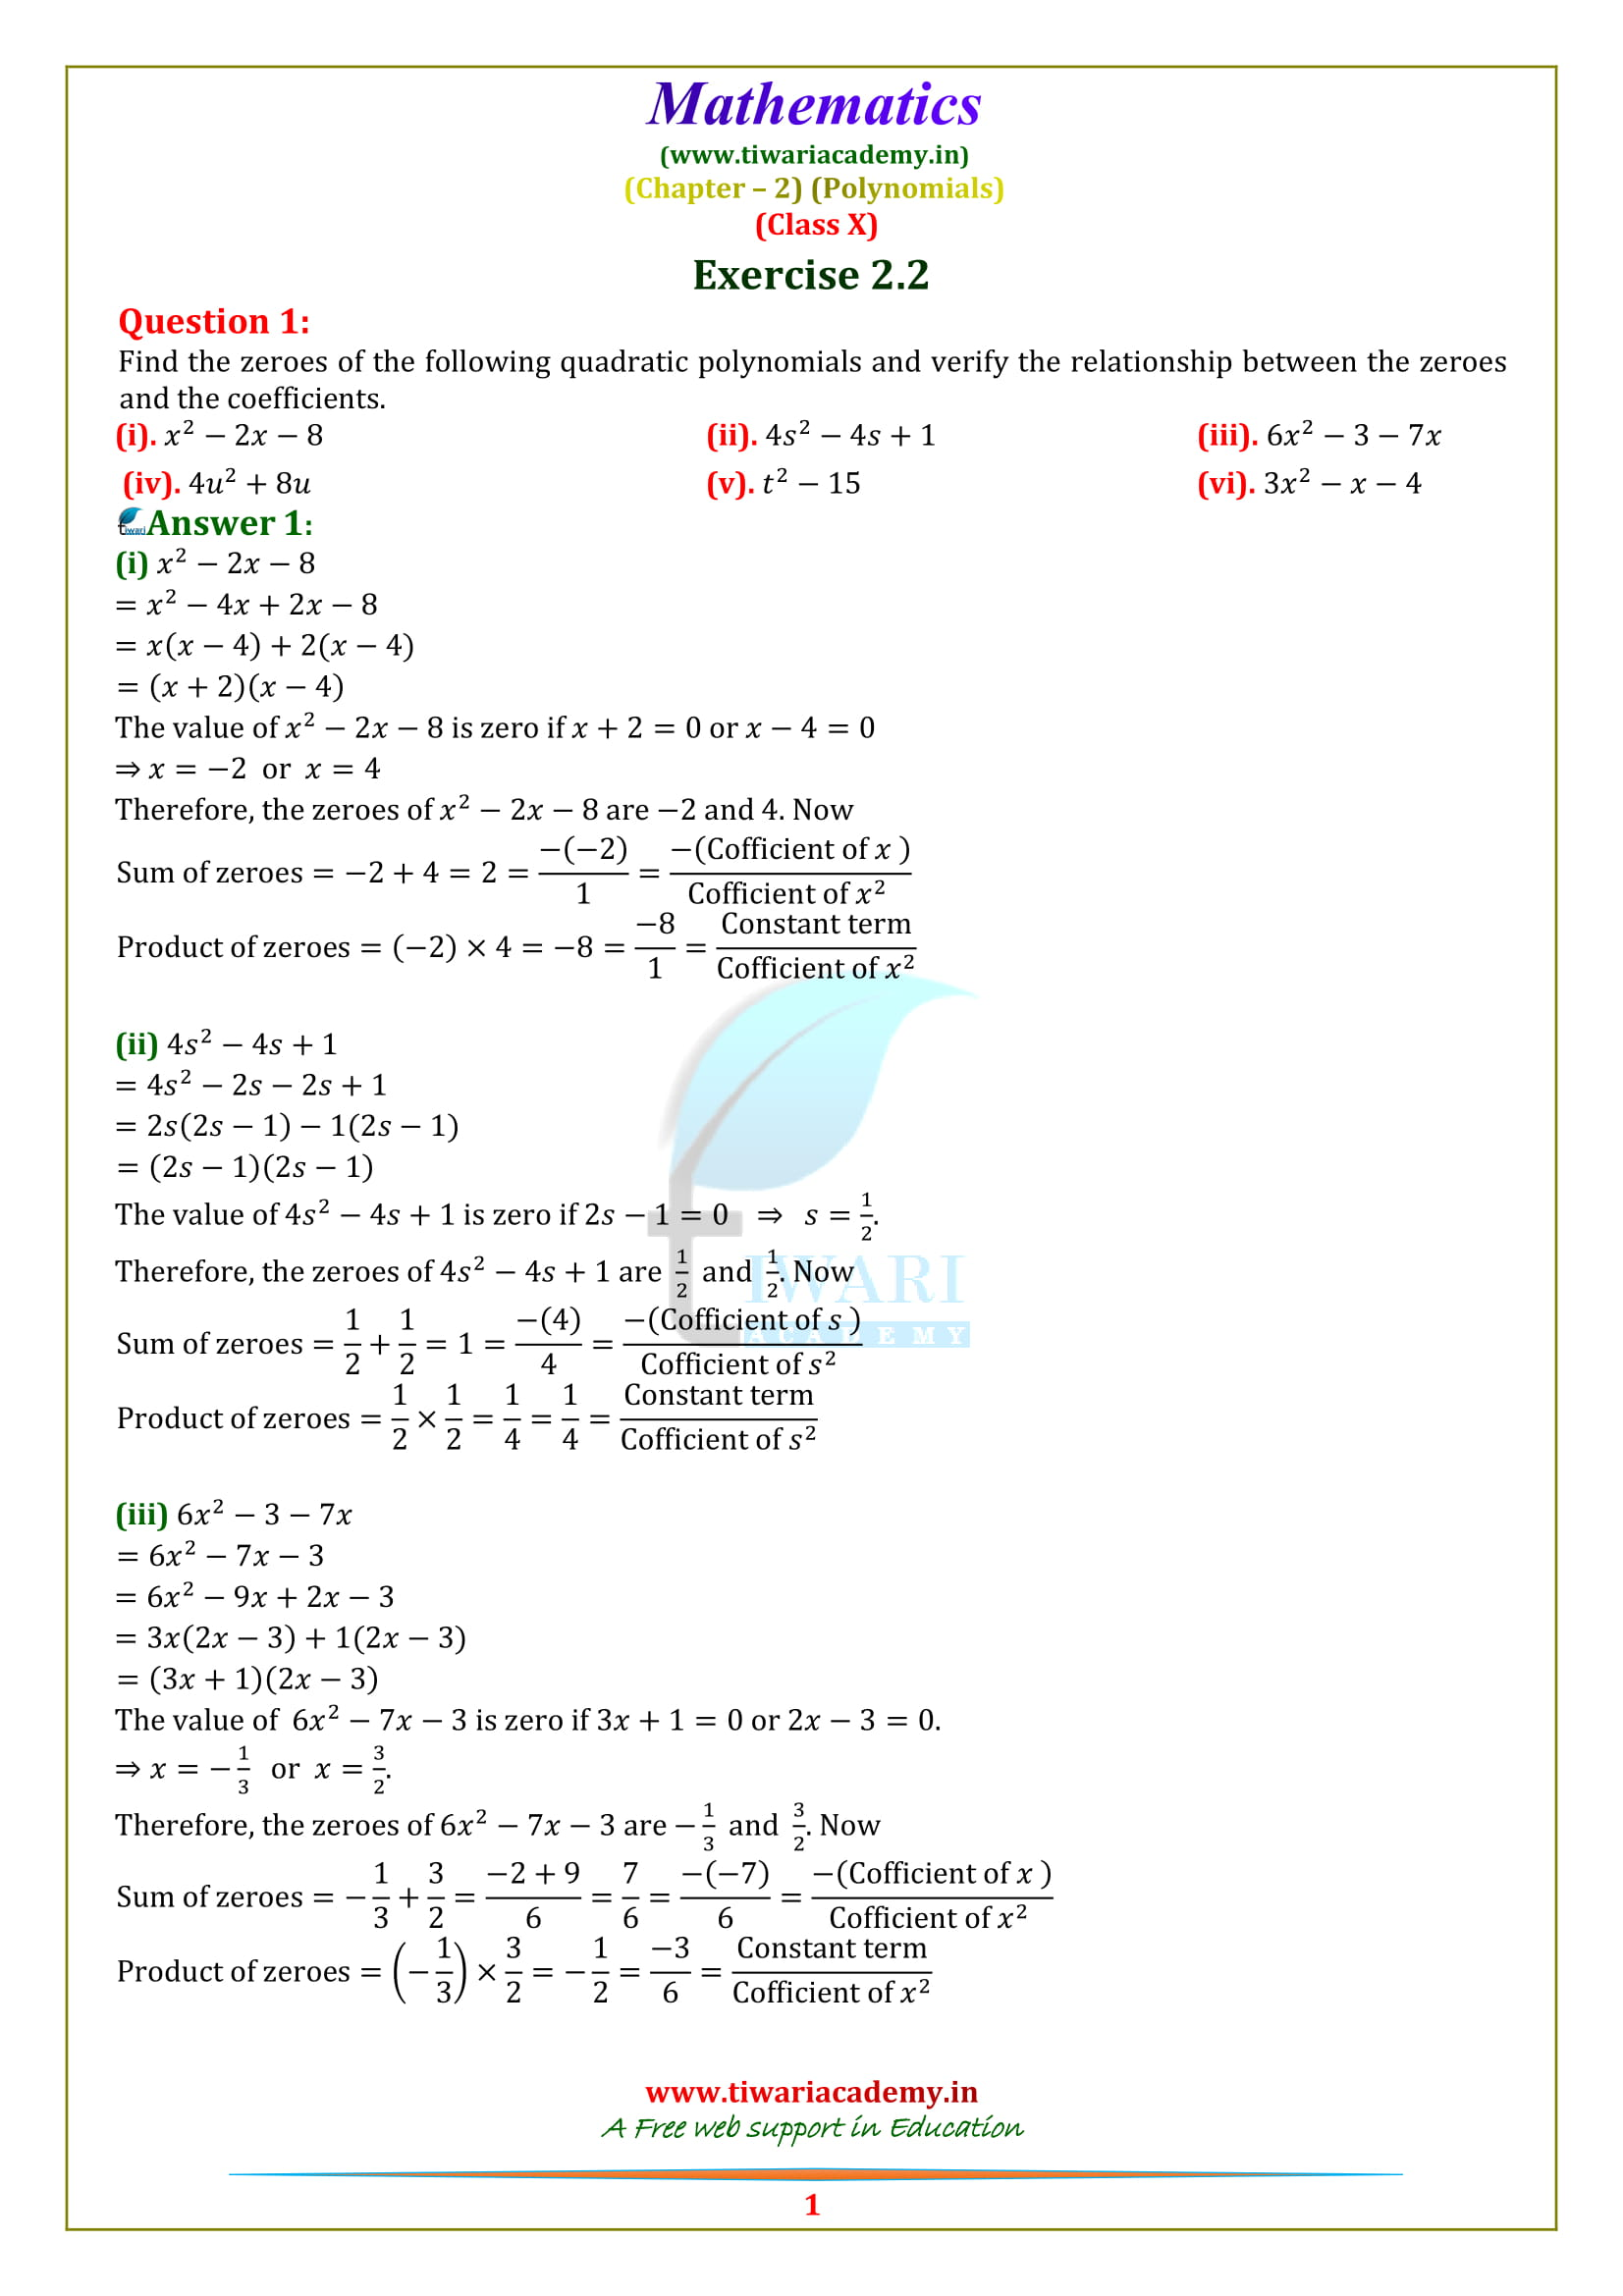 10 Maths Exercise 2.2 in English medium question 1